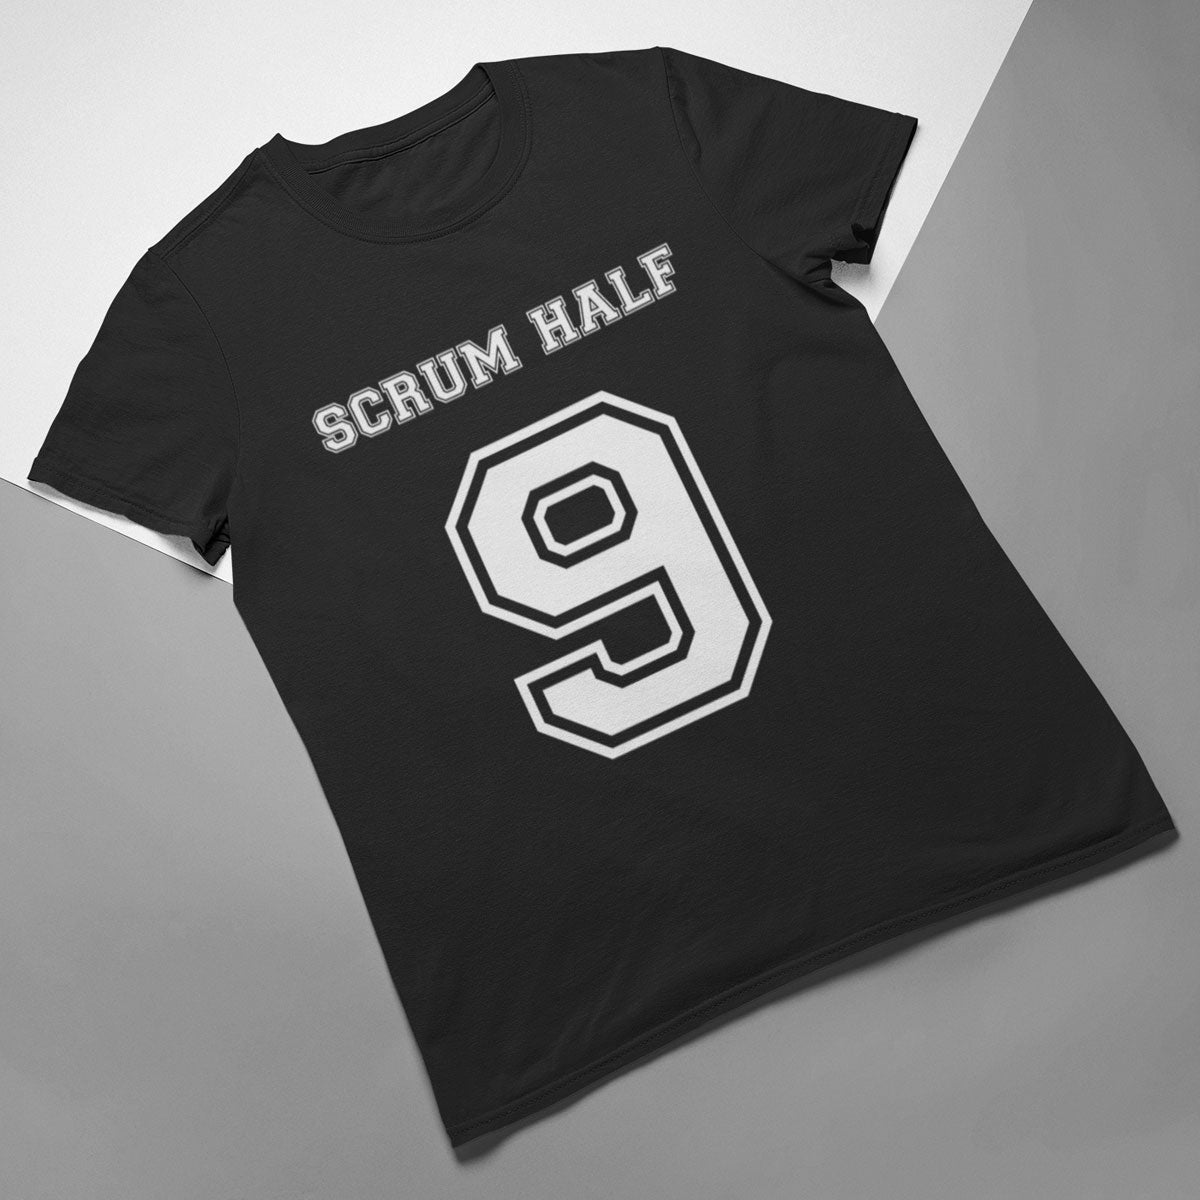 Scrum Half Number 9 Rugby Tee - First XV rugbystuff.com